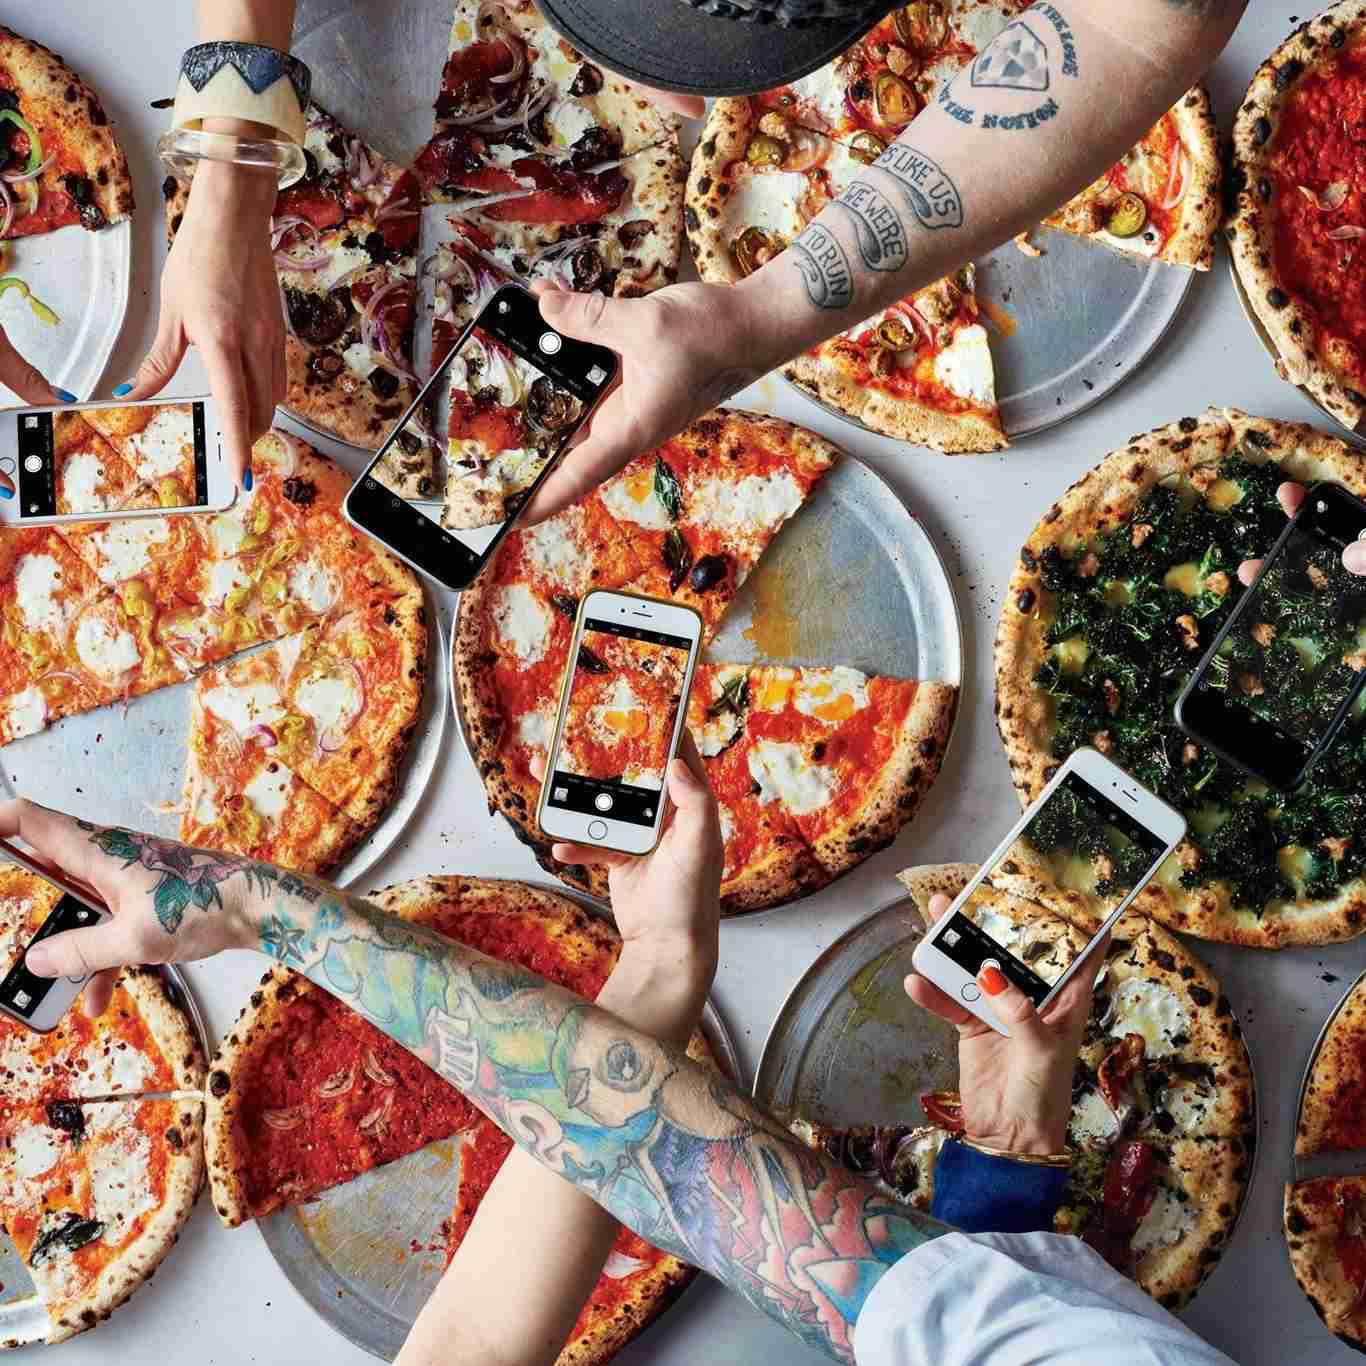 Display of pizza's